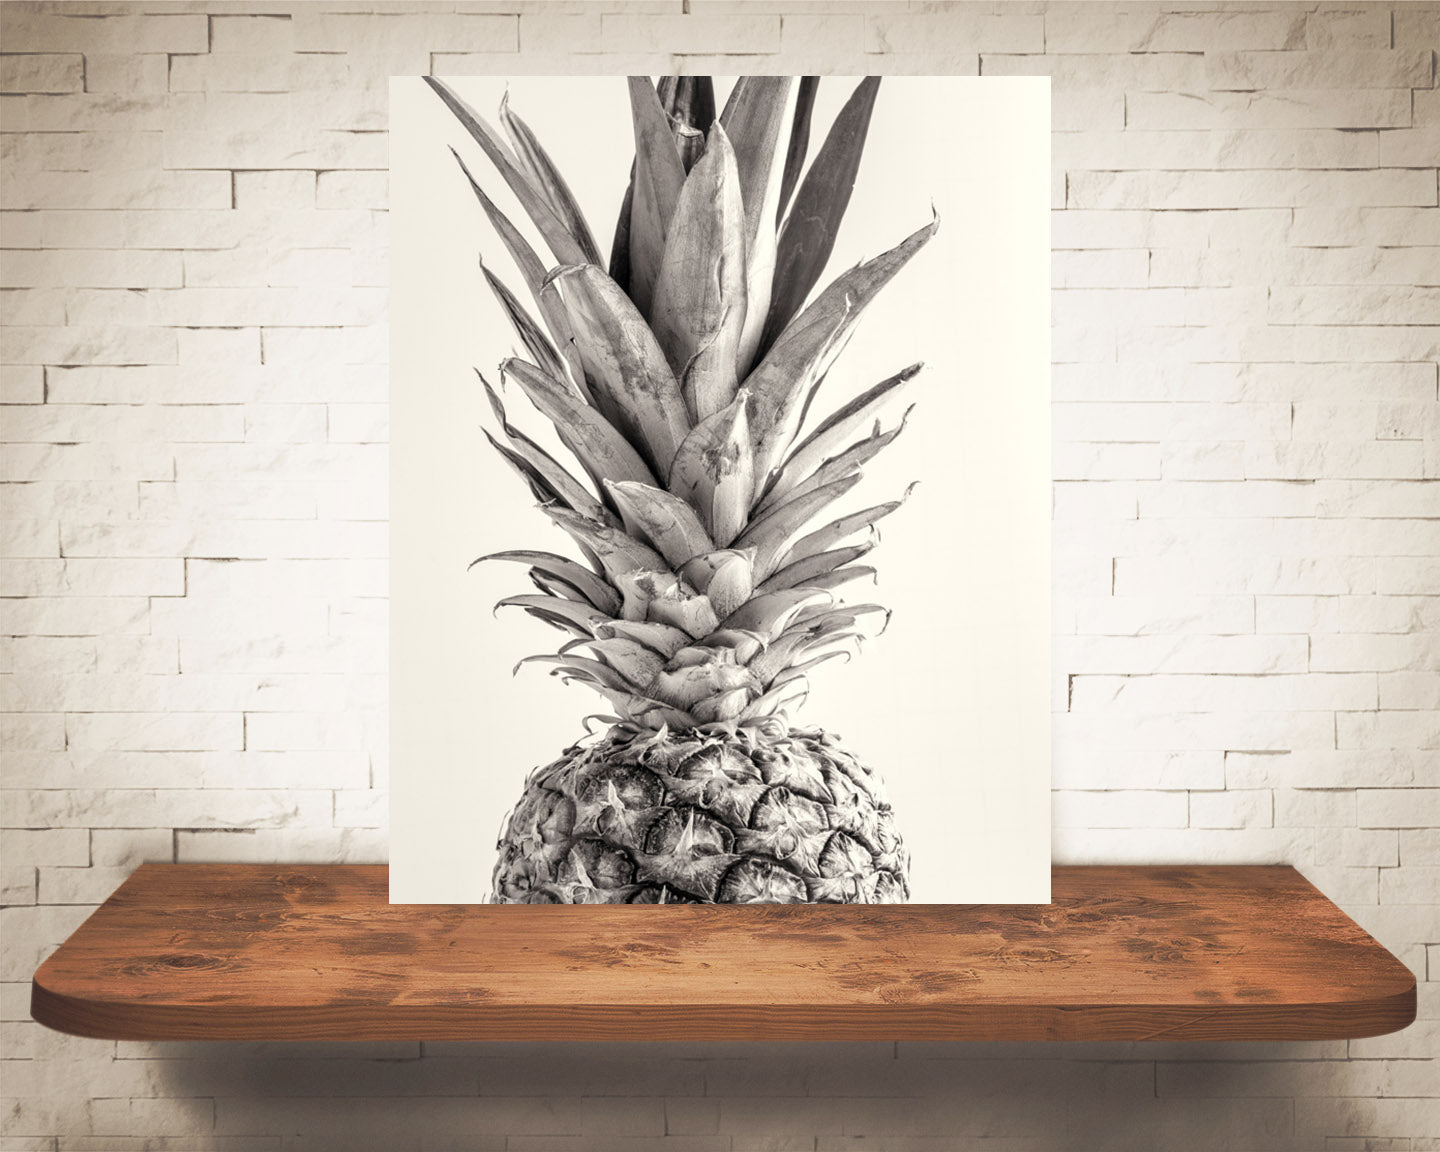 Pineapple Photograph Sepia